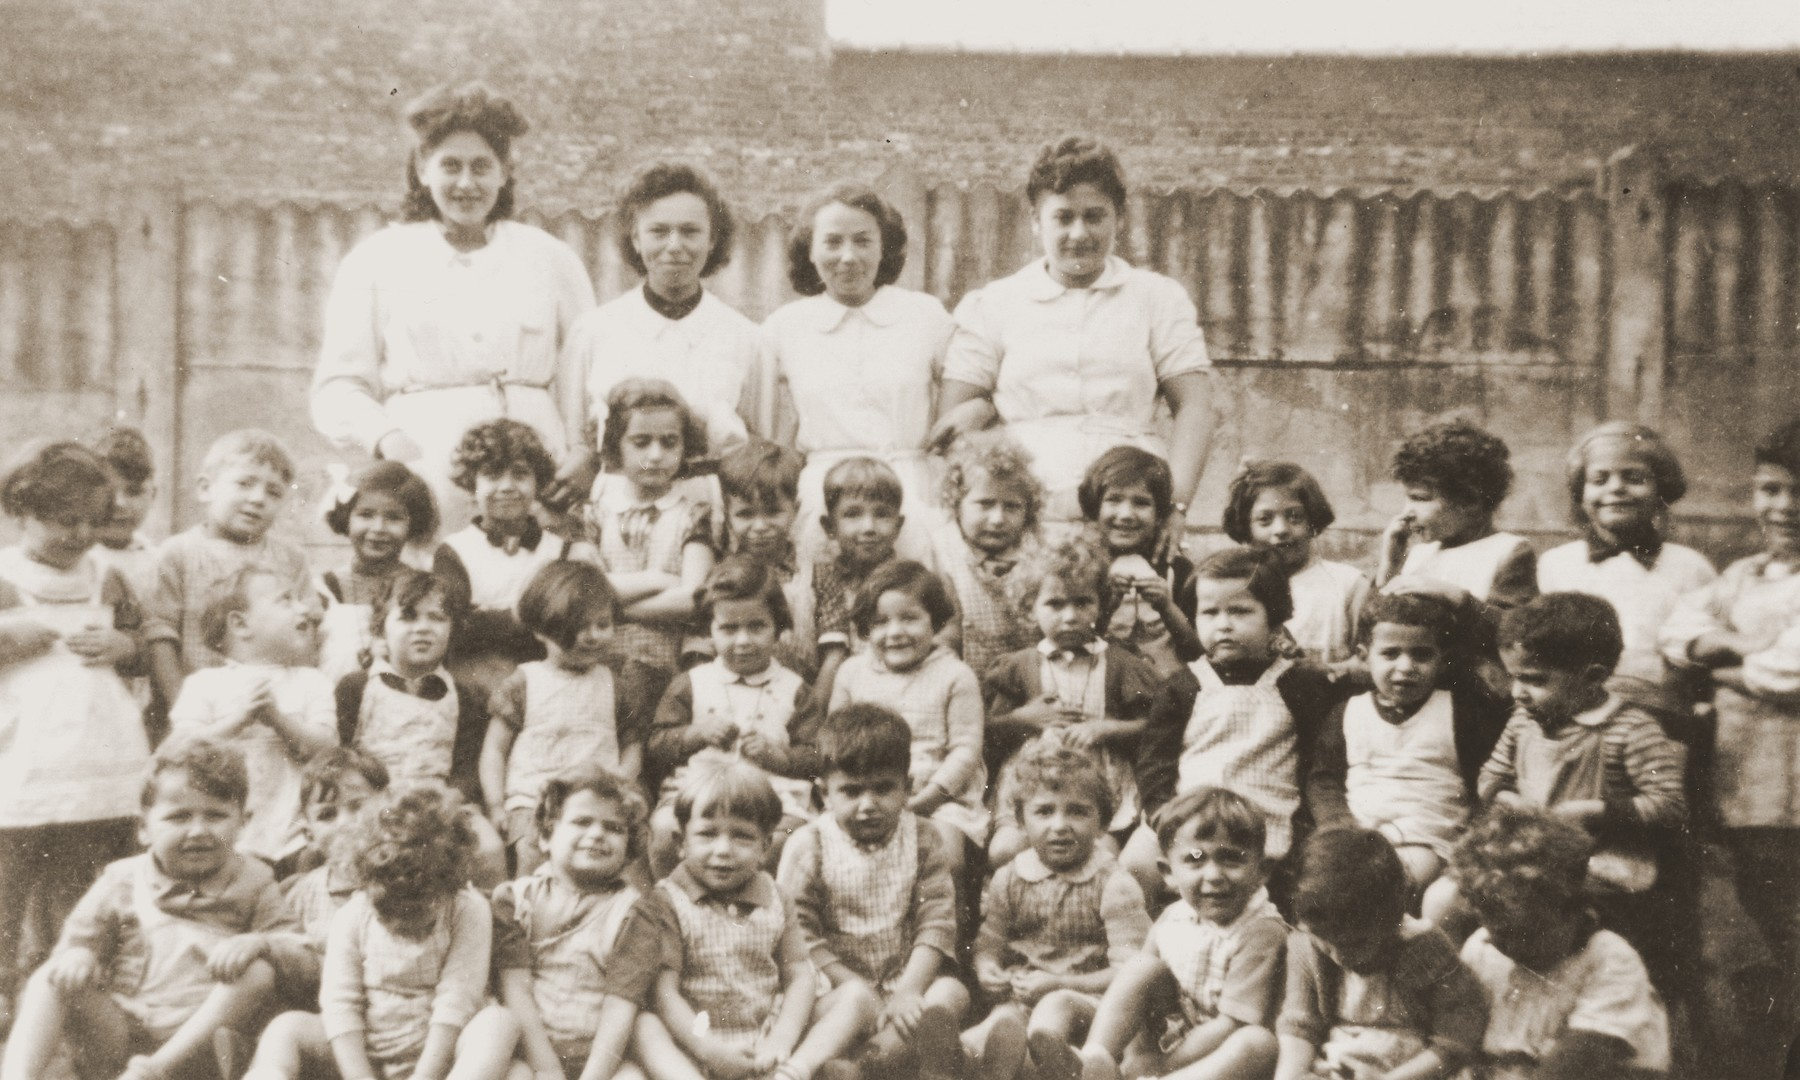 Group portrait of the children and staff of La Pouponniere children's home in Uccle.  Among those pictured are Paula Bucholc, Jeannette, and DeeDee (second row, 4th, 3rd, and 2nd from the right).